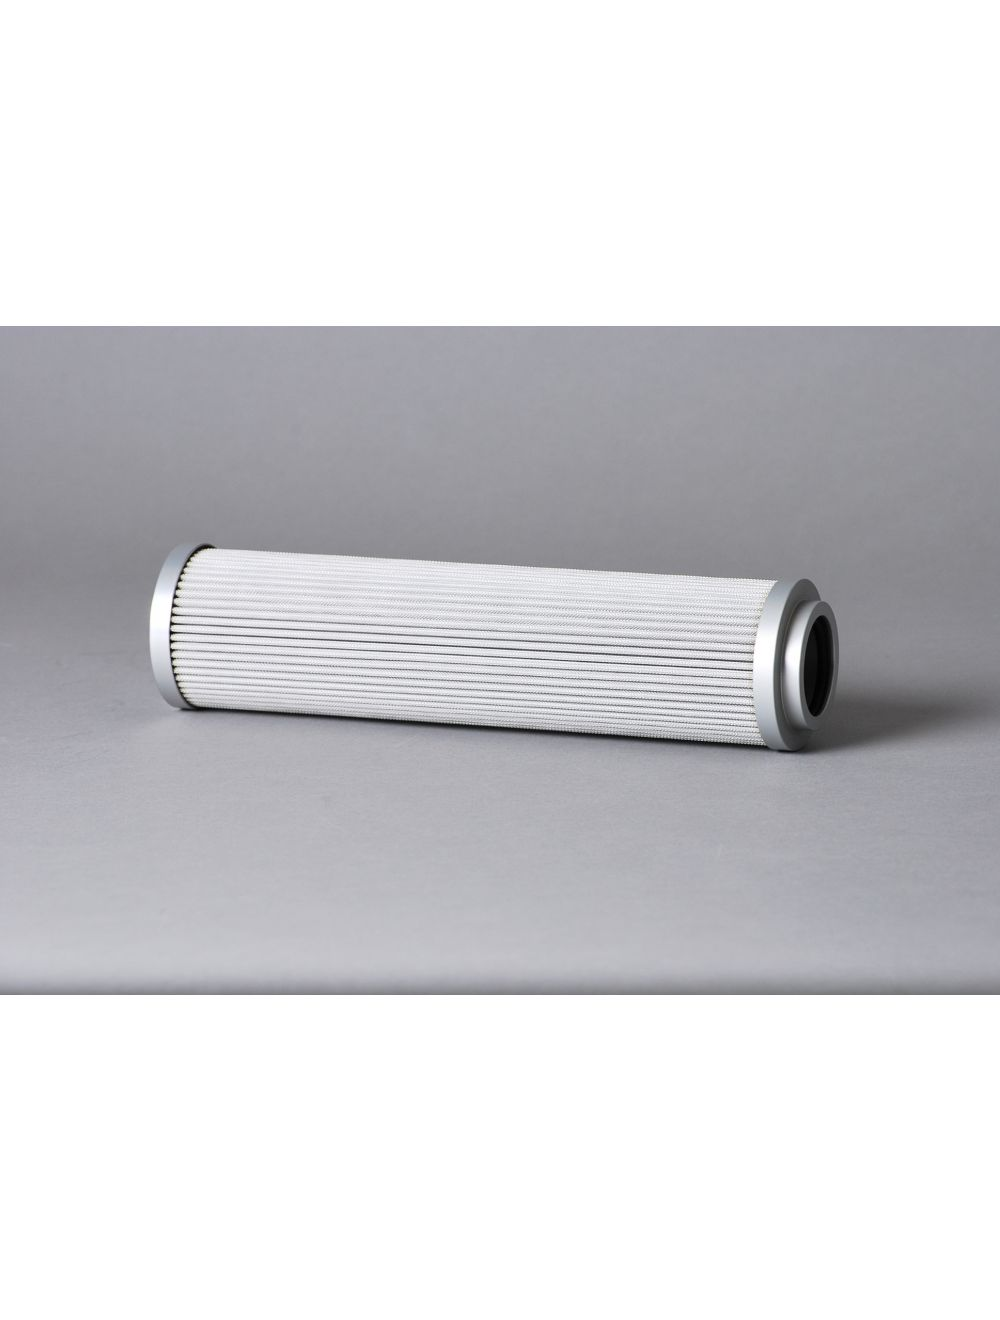 10Mb hy-pro ( hypro ) hp28nl12-10mb replacement filter